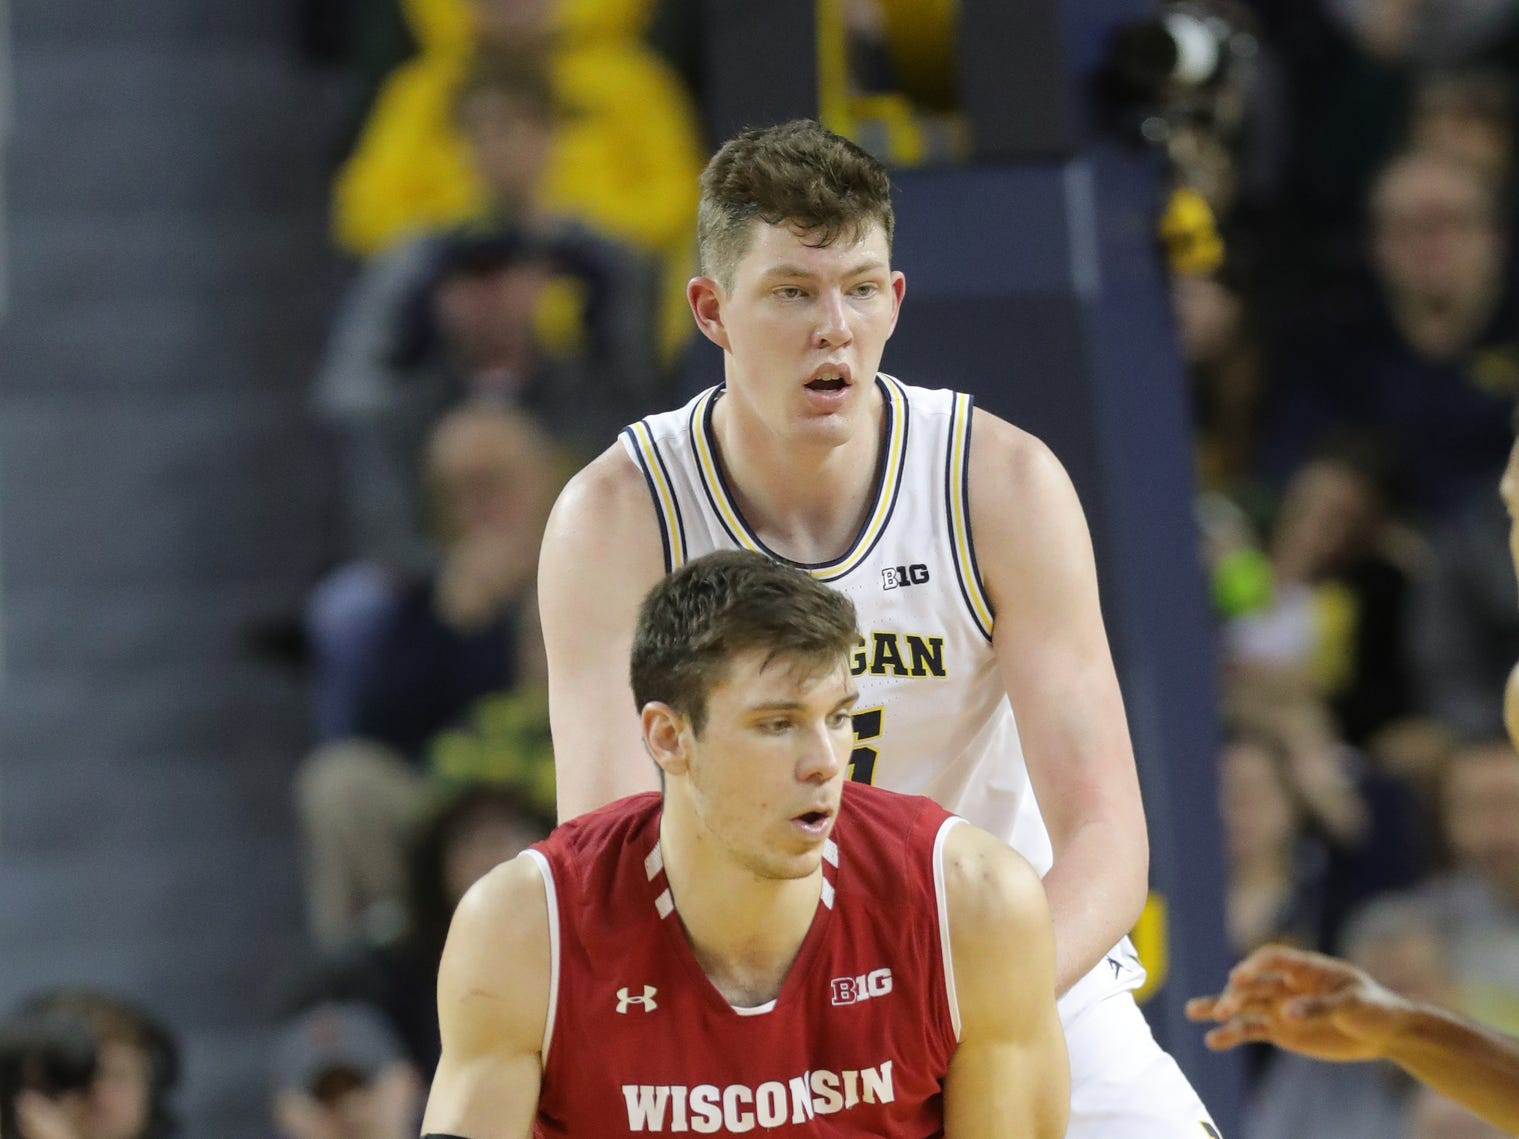 Michigan center Jon Teske defends Wisconsin forward Ethan Happ, Saturday, Feb. 9, 2019 at Crisler Center.